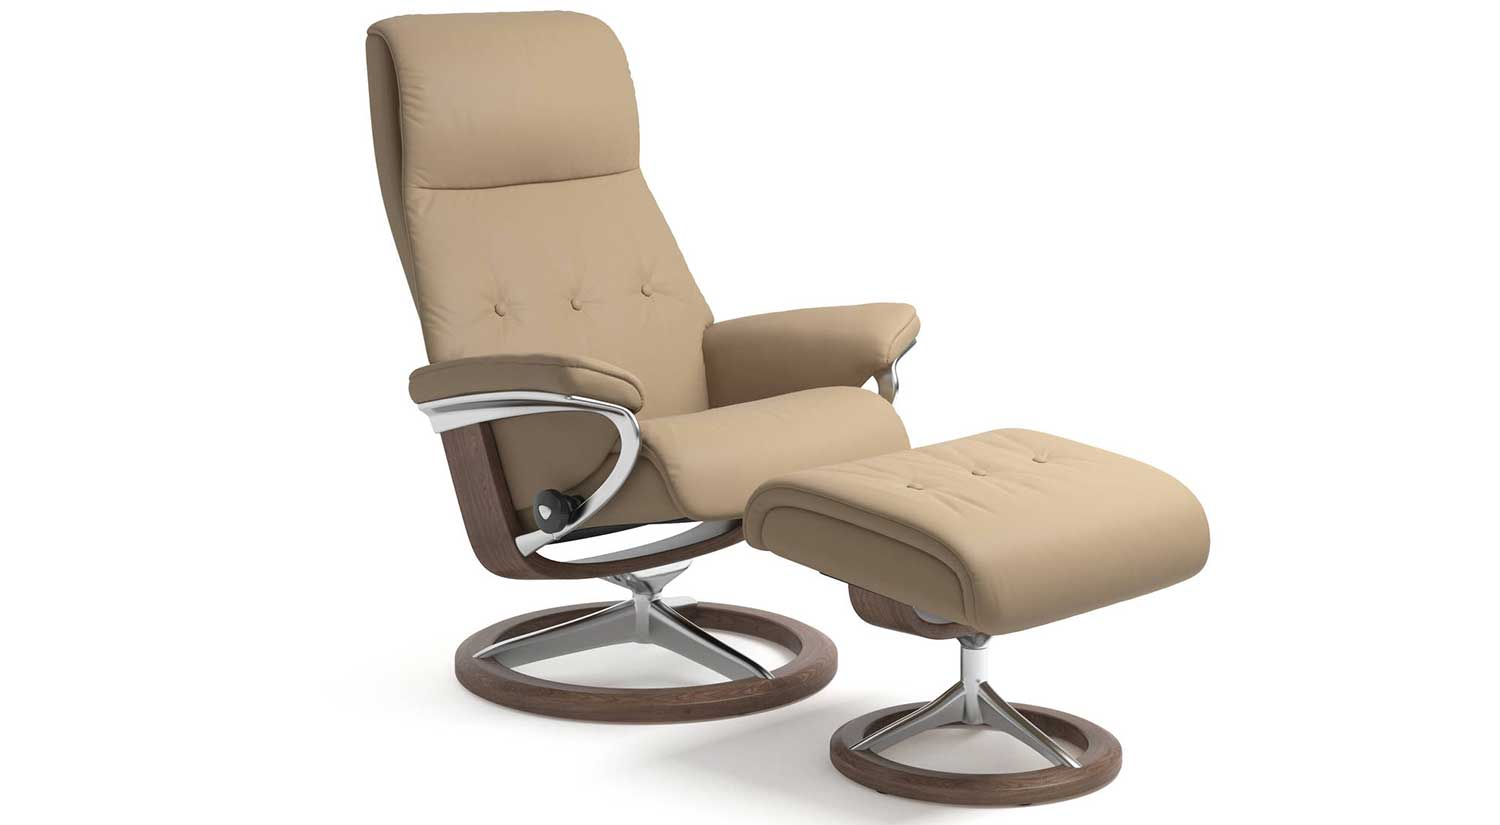 circle furniture sky stressless signature chairs leather